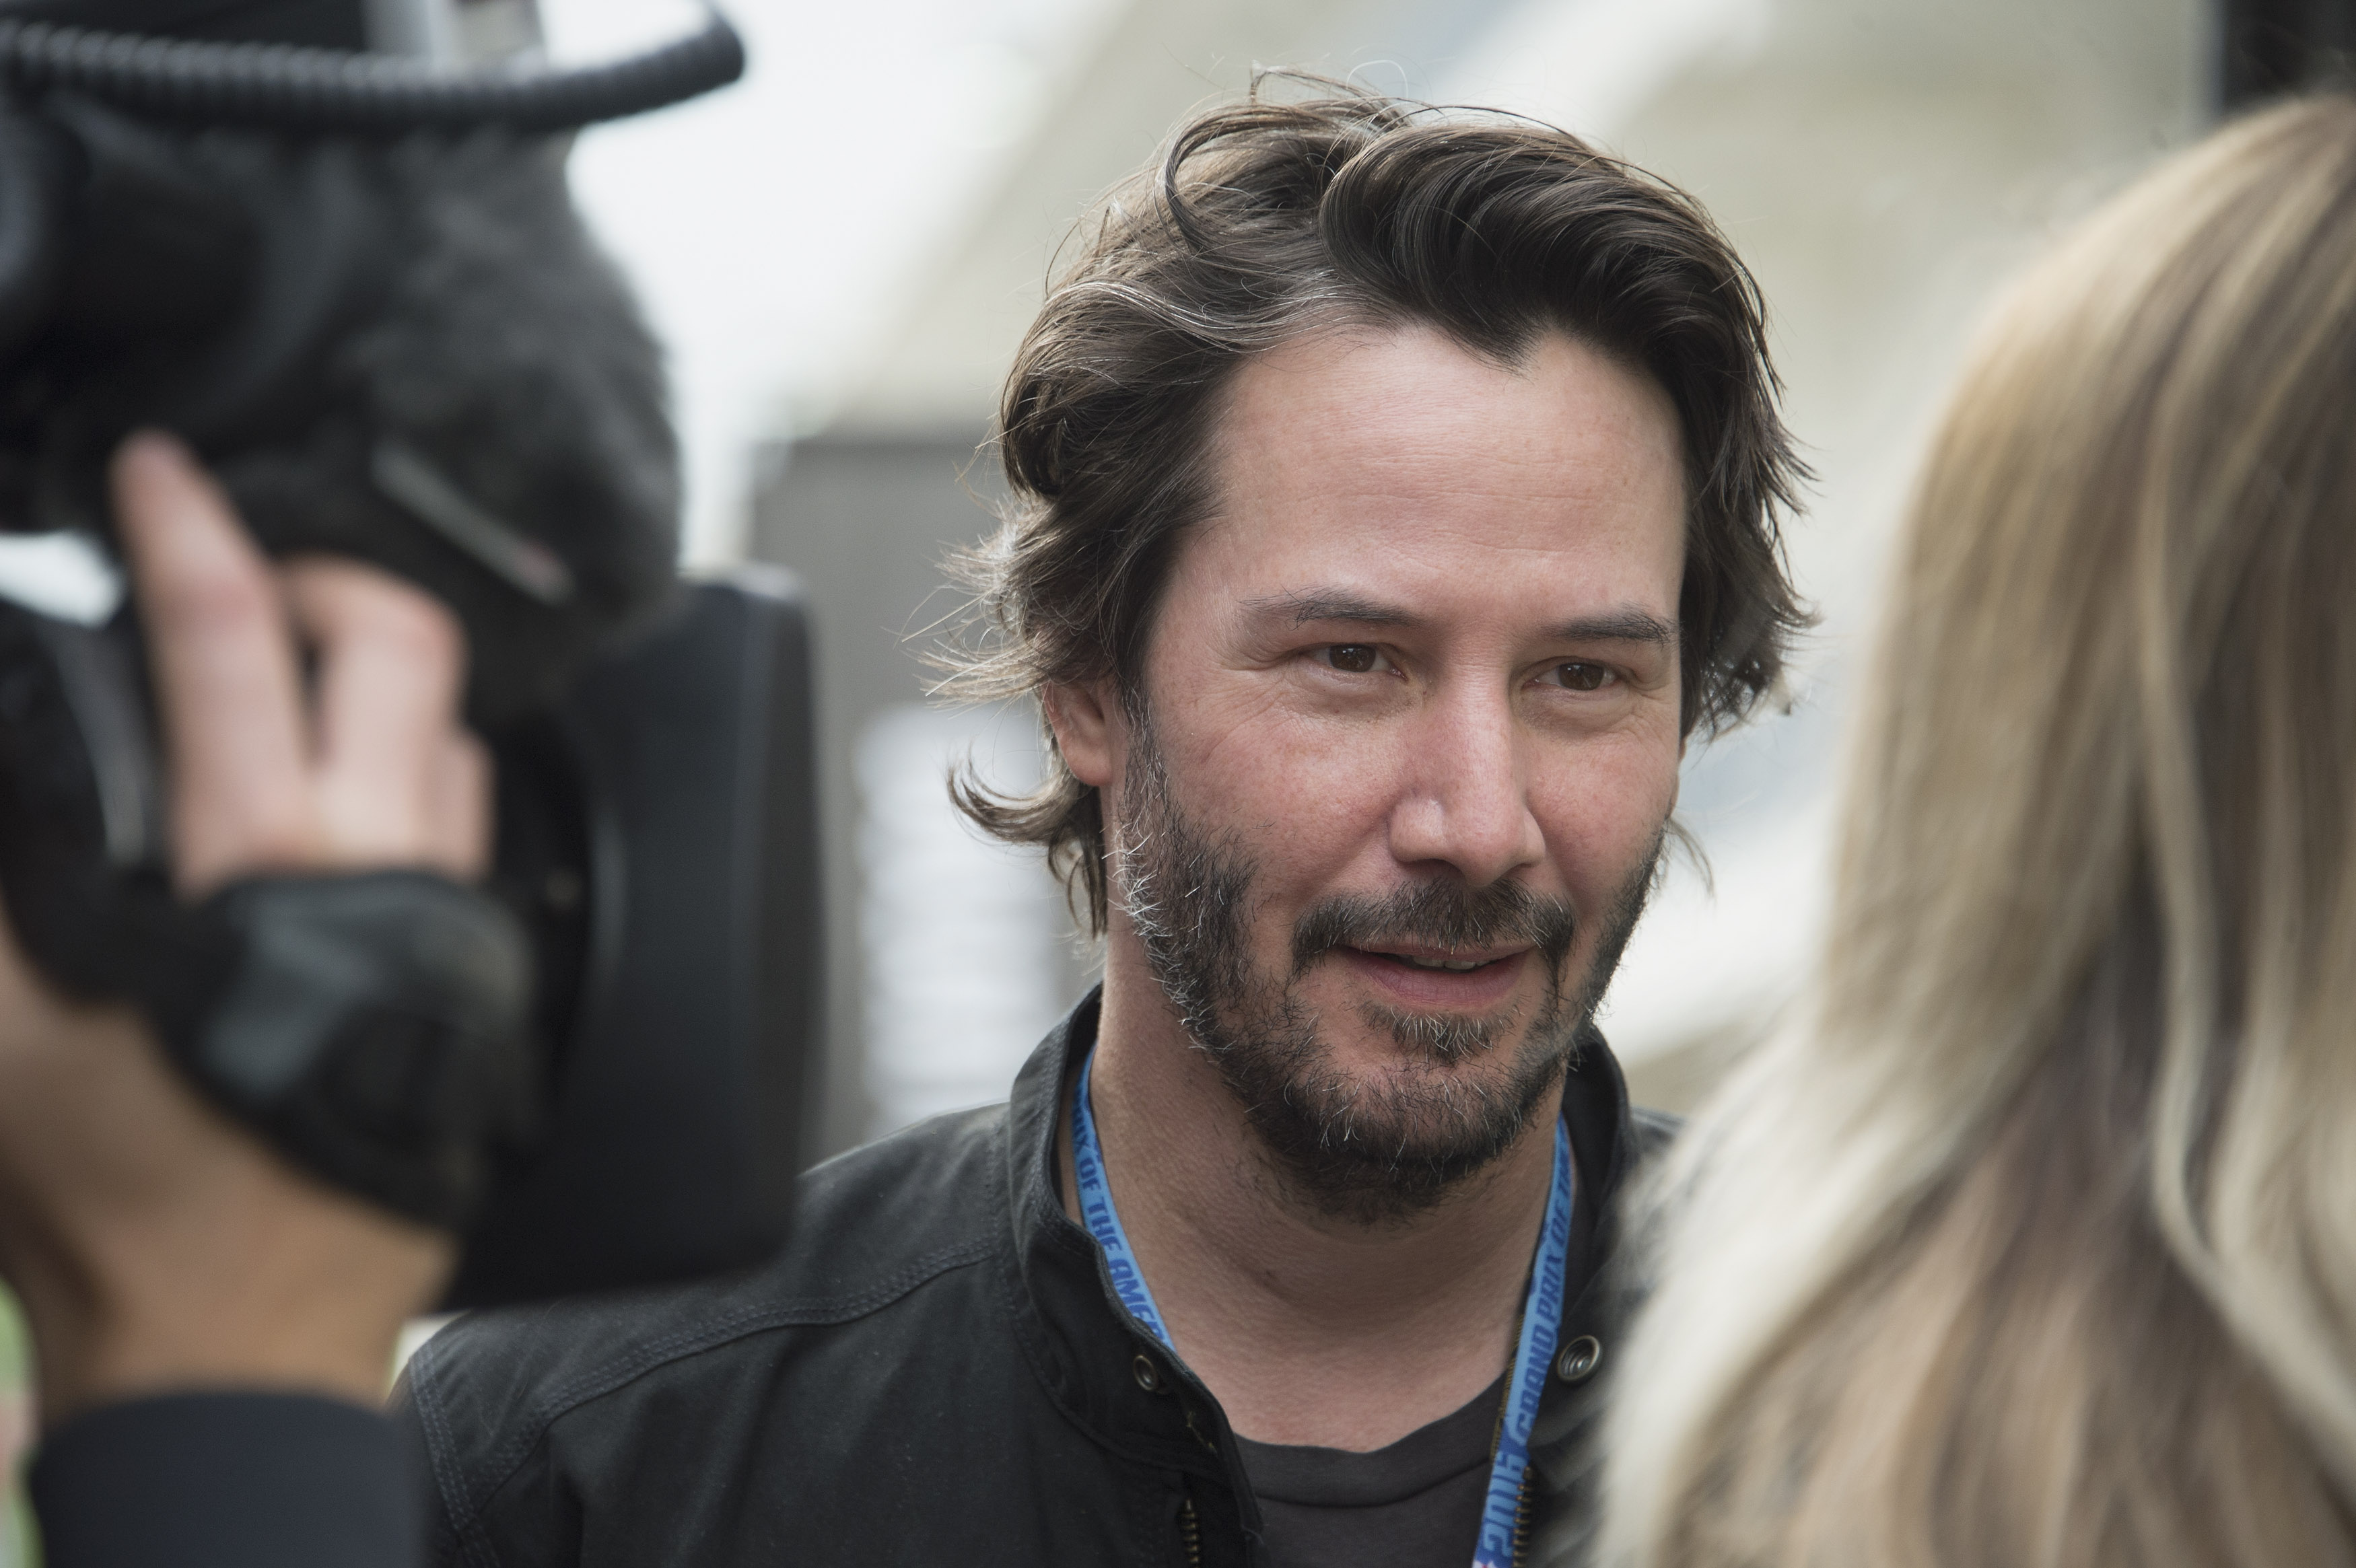 Communication on this topic: Abbie Cornish, keanu-reeves/